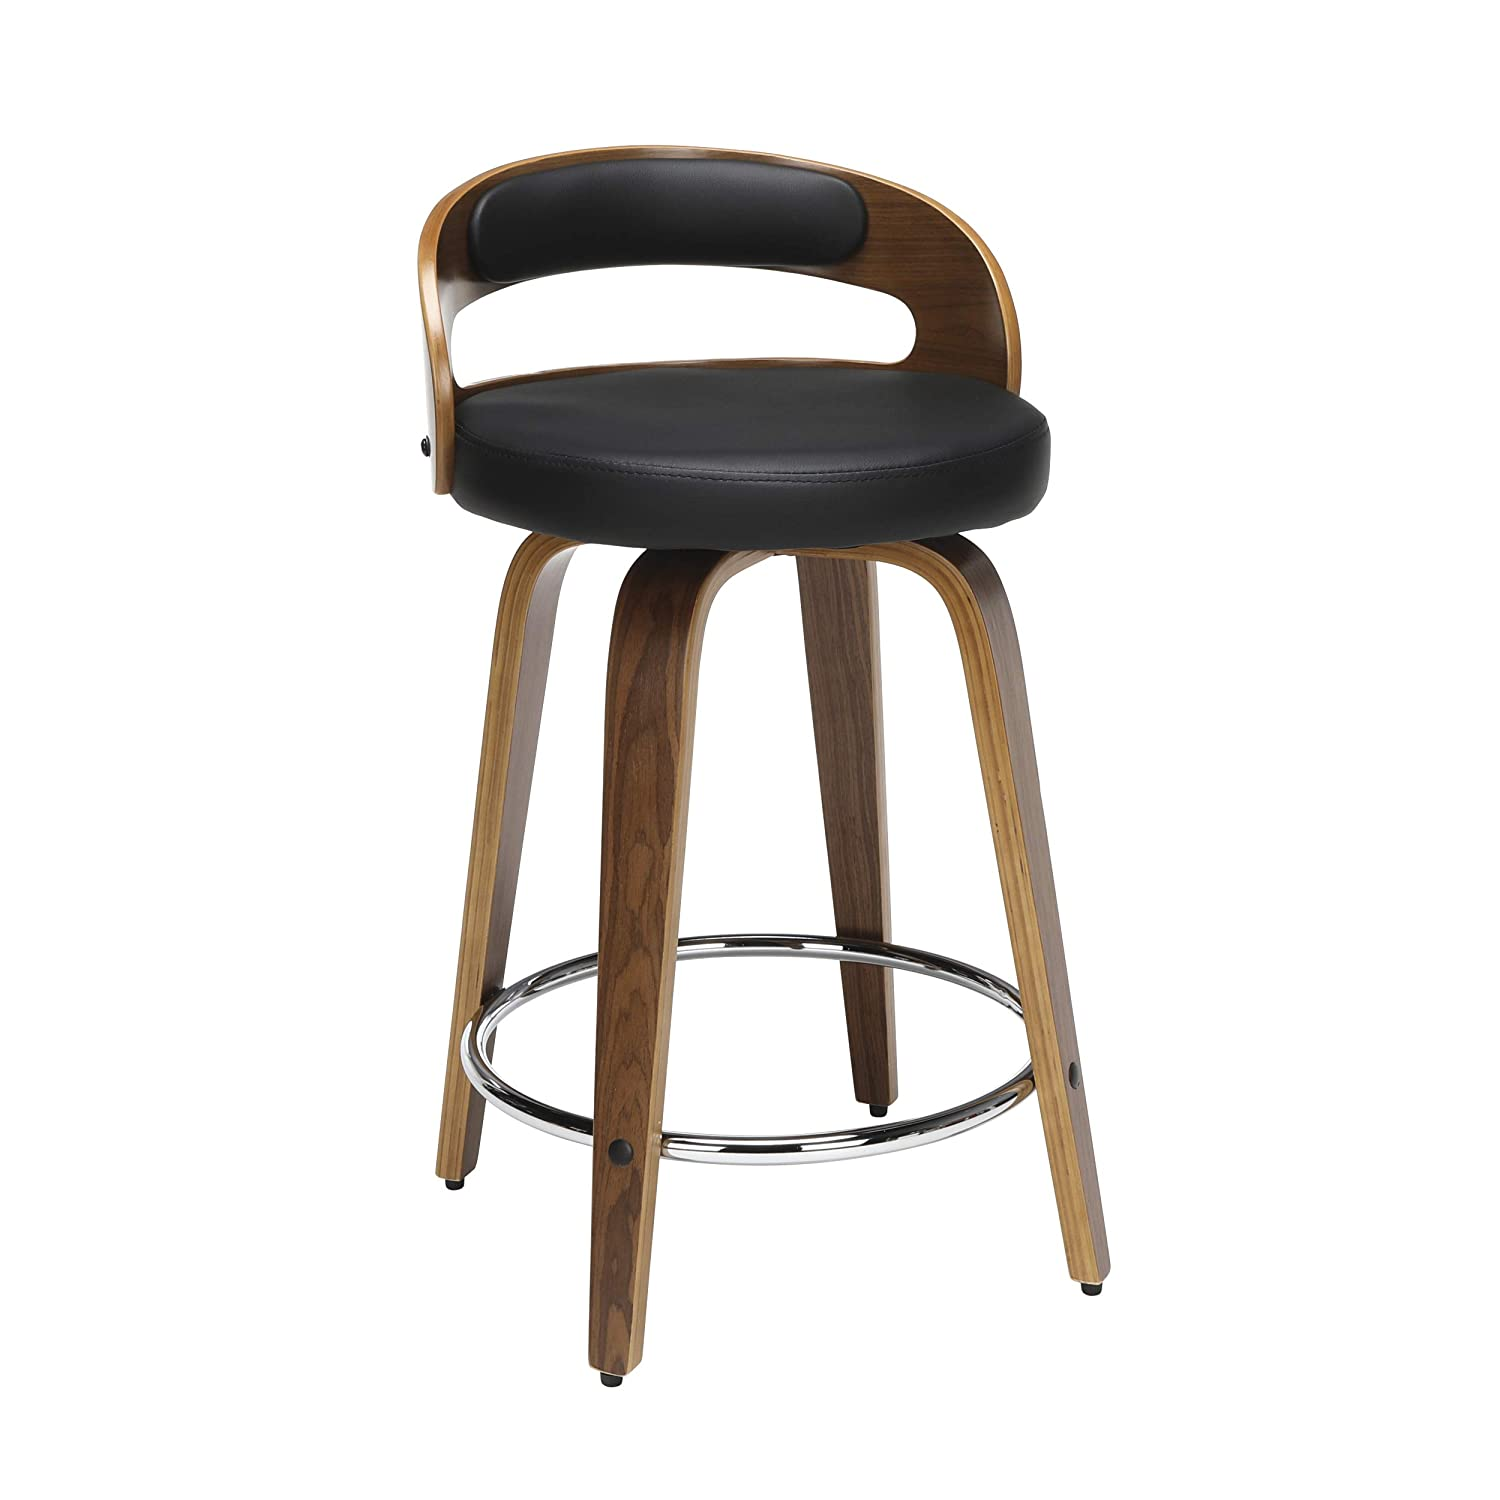 Amazing Ofm 161 Collection Mid Century Modern 24 Low Back Bentwood Frame Swivel Seat Stool With Vinyl Back And Seat Cushion In Walnut Black 161 Wv24C Blk Unemploymentrelief Wooden Chair Designs For Living Room Unemploymentrelieforg